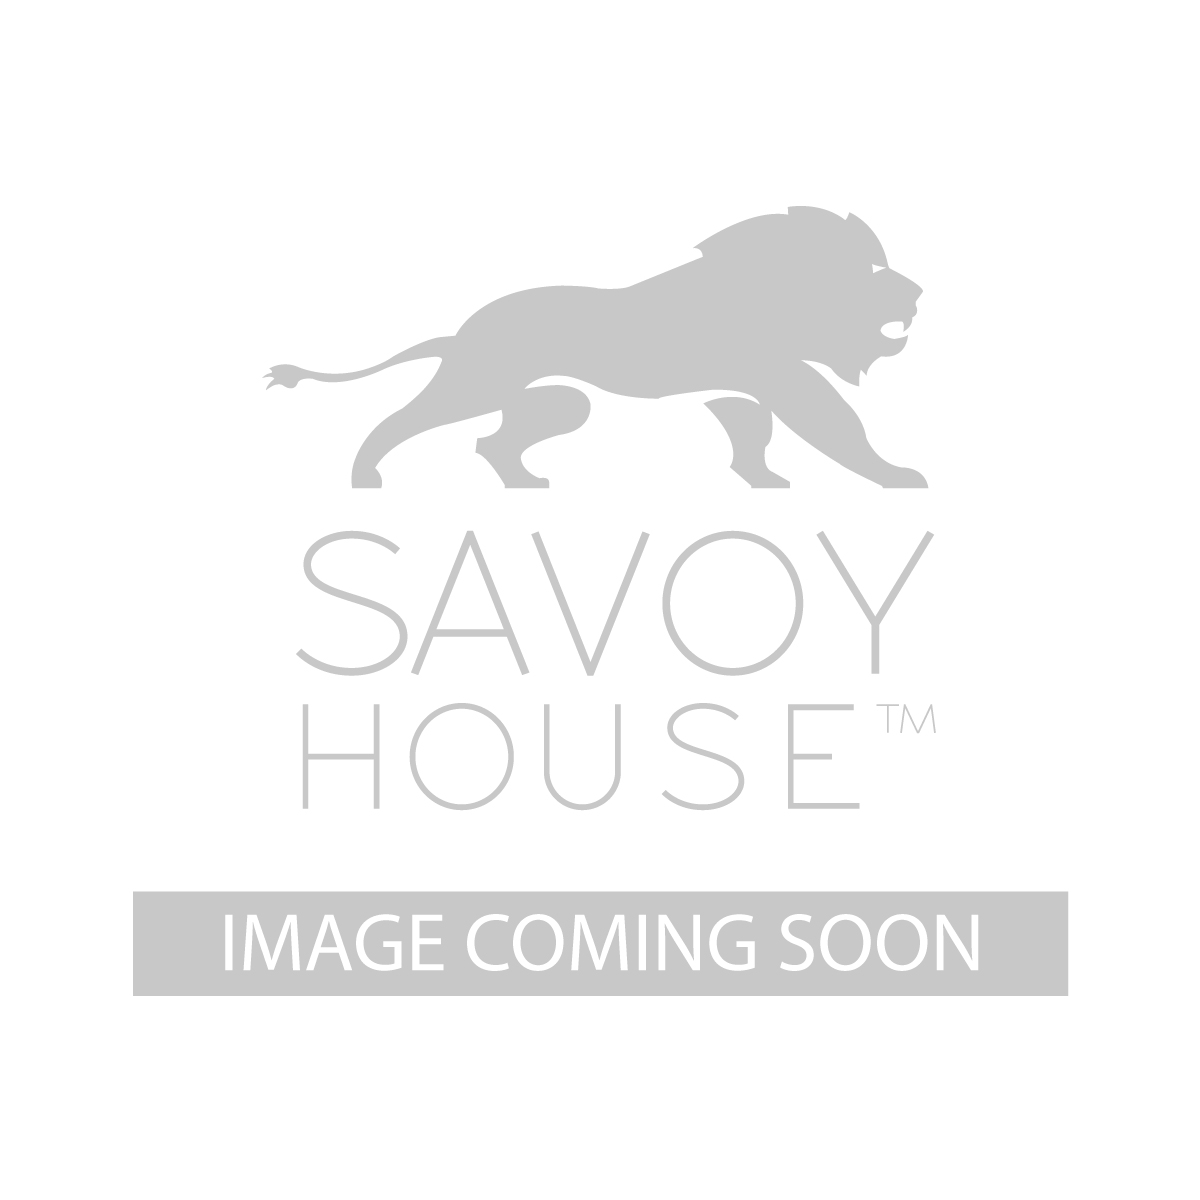 8-6801-2-11 Lombard 2 Light Bath Bar by Savoy House